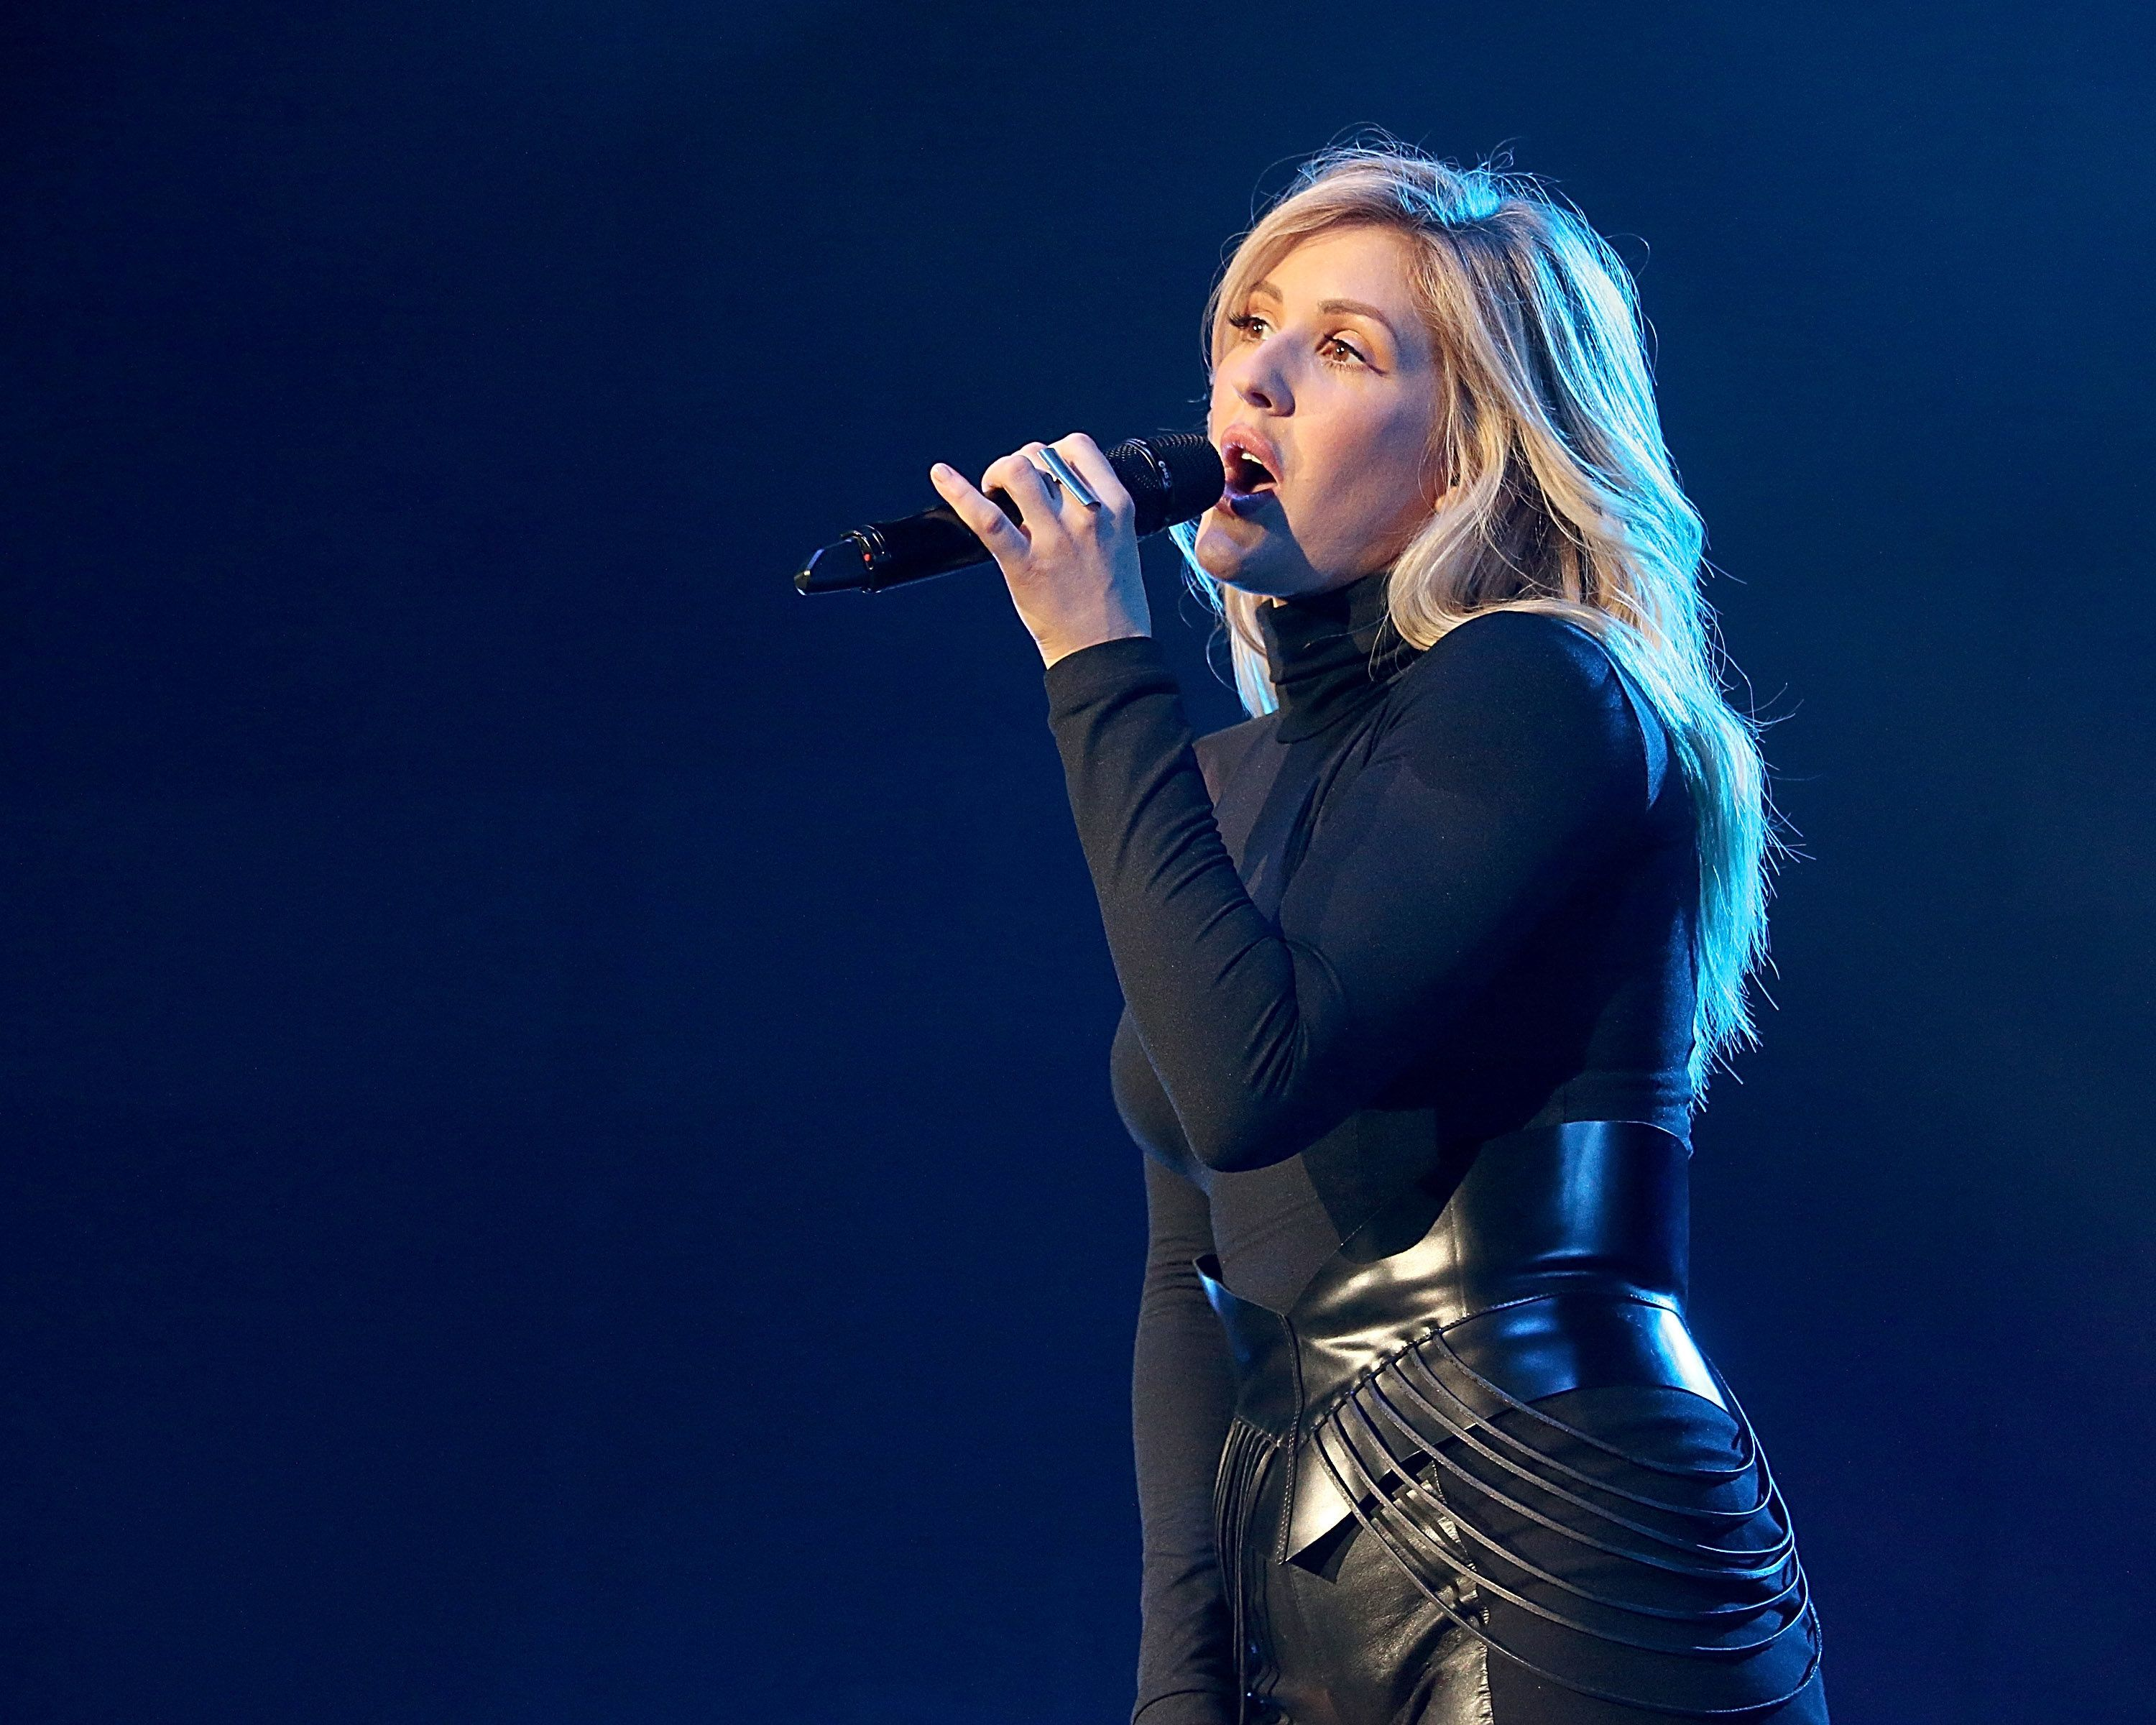 CEDAR PARK, TEXAS - APRIL 19:  Ellie Goulding performs in concert at the Cedar Park Center on April 19, 2016 in Cedar Park, Texas.  (Photo by Gary Miller/Getty Images)